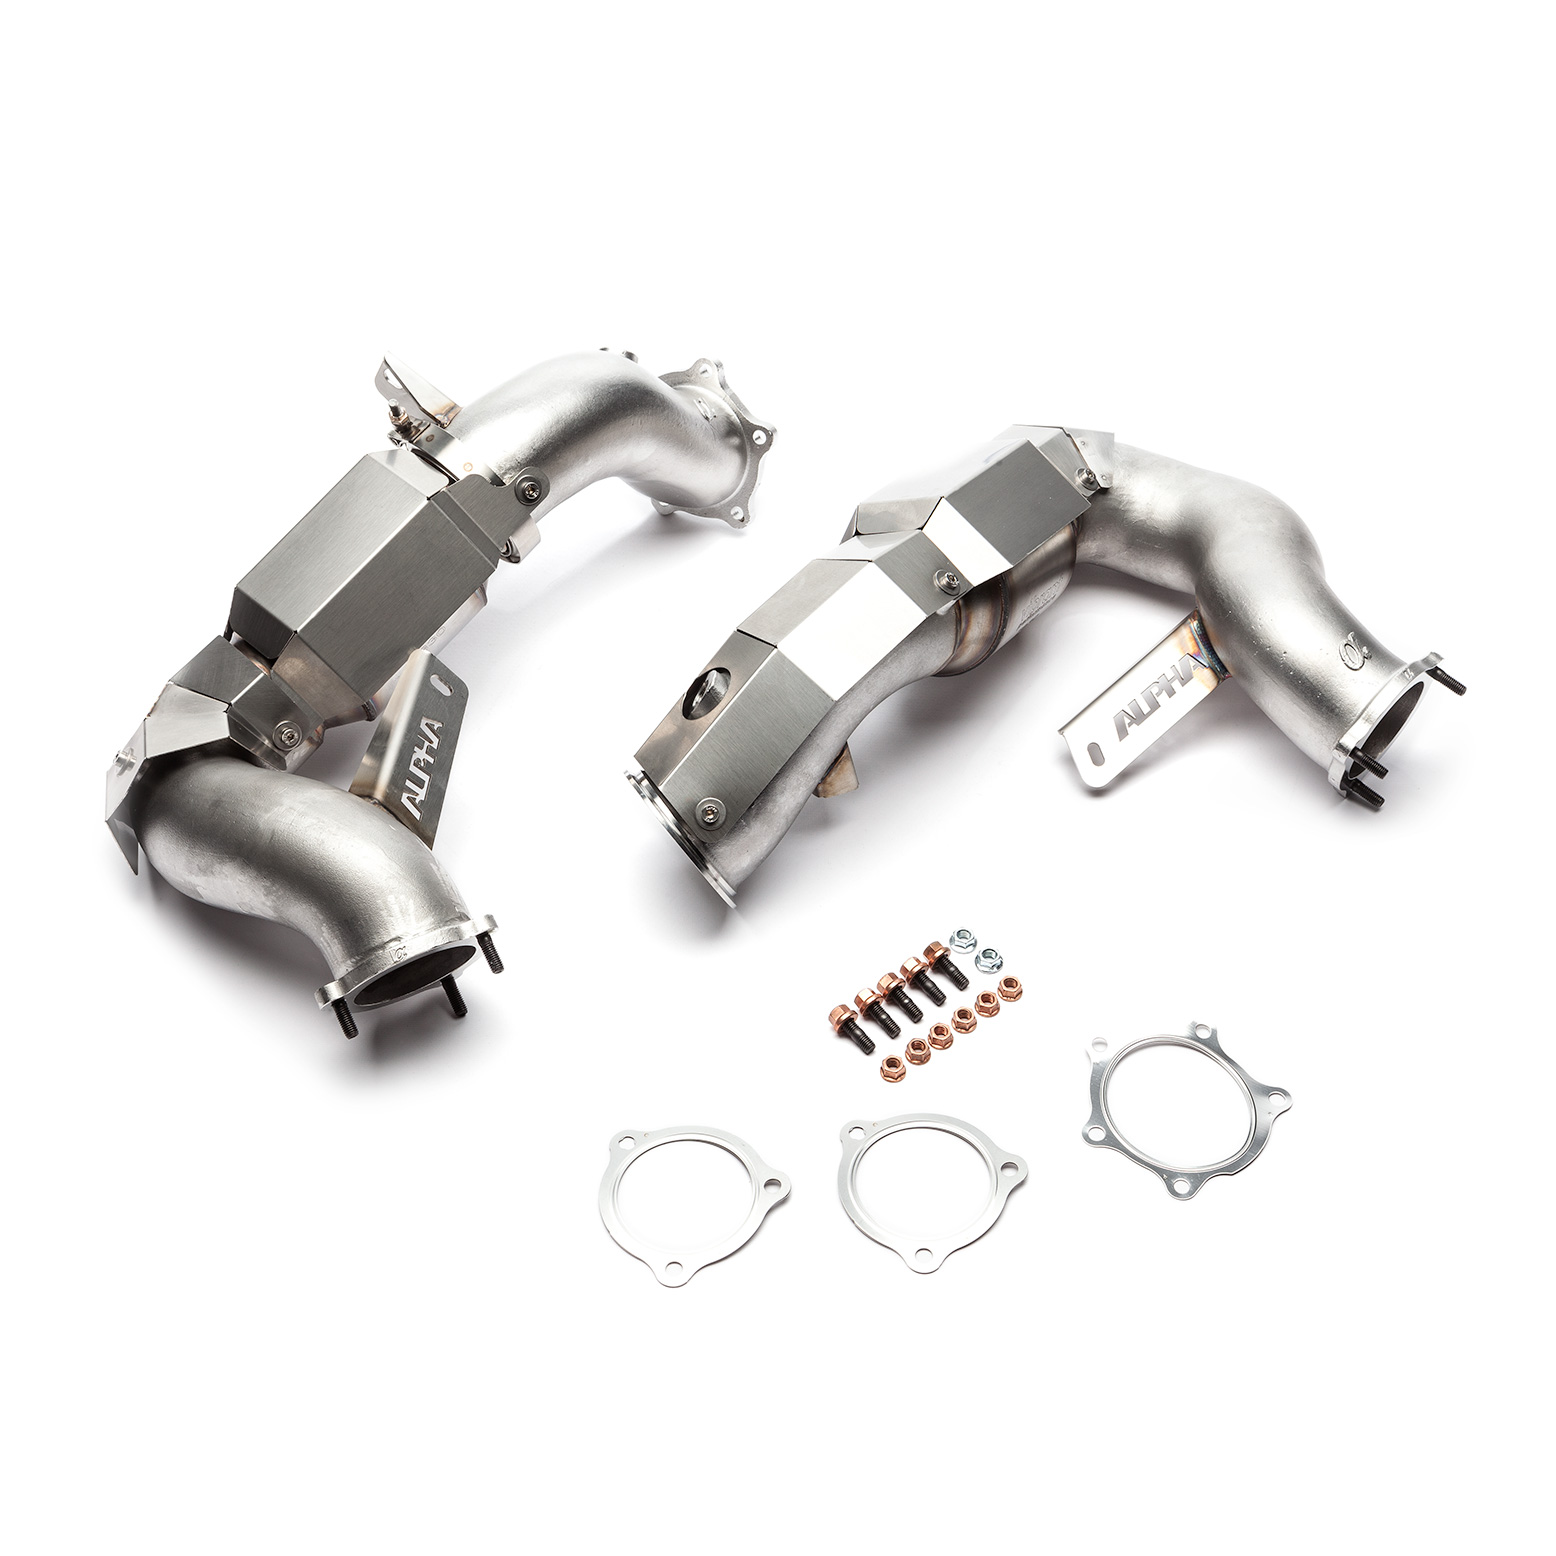 Alpha Performance Downpipes for Porsche Macan S / GTS / Turbo 2015-2018